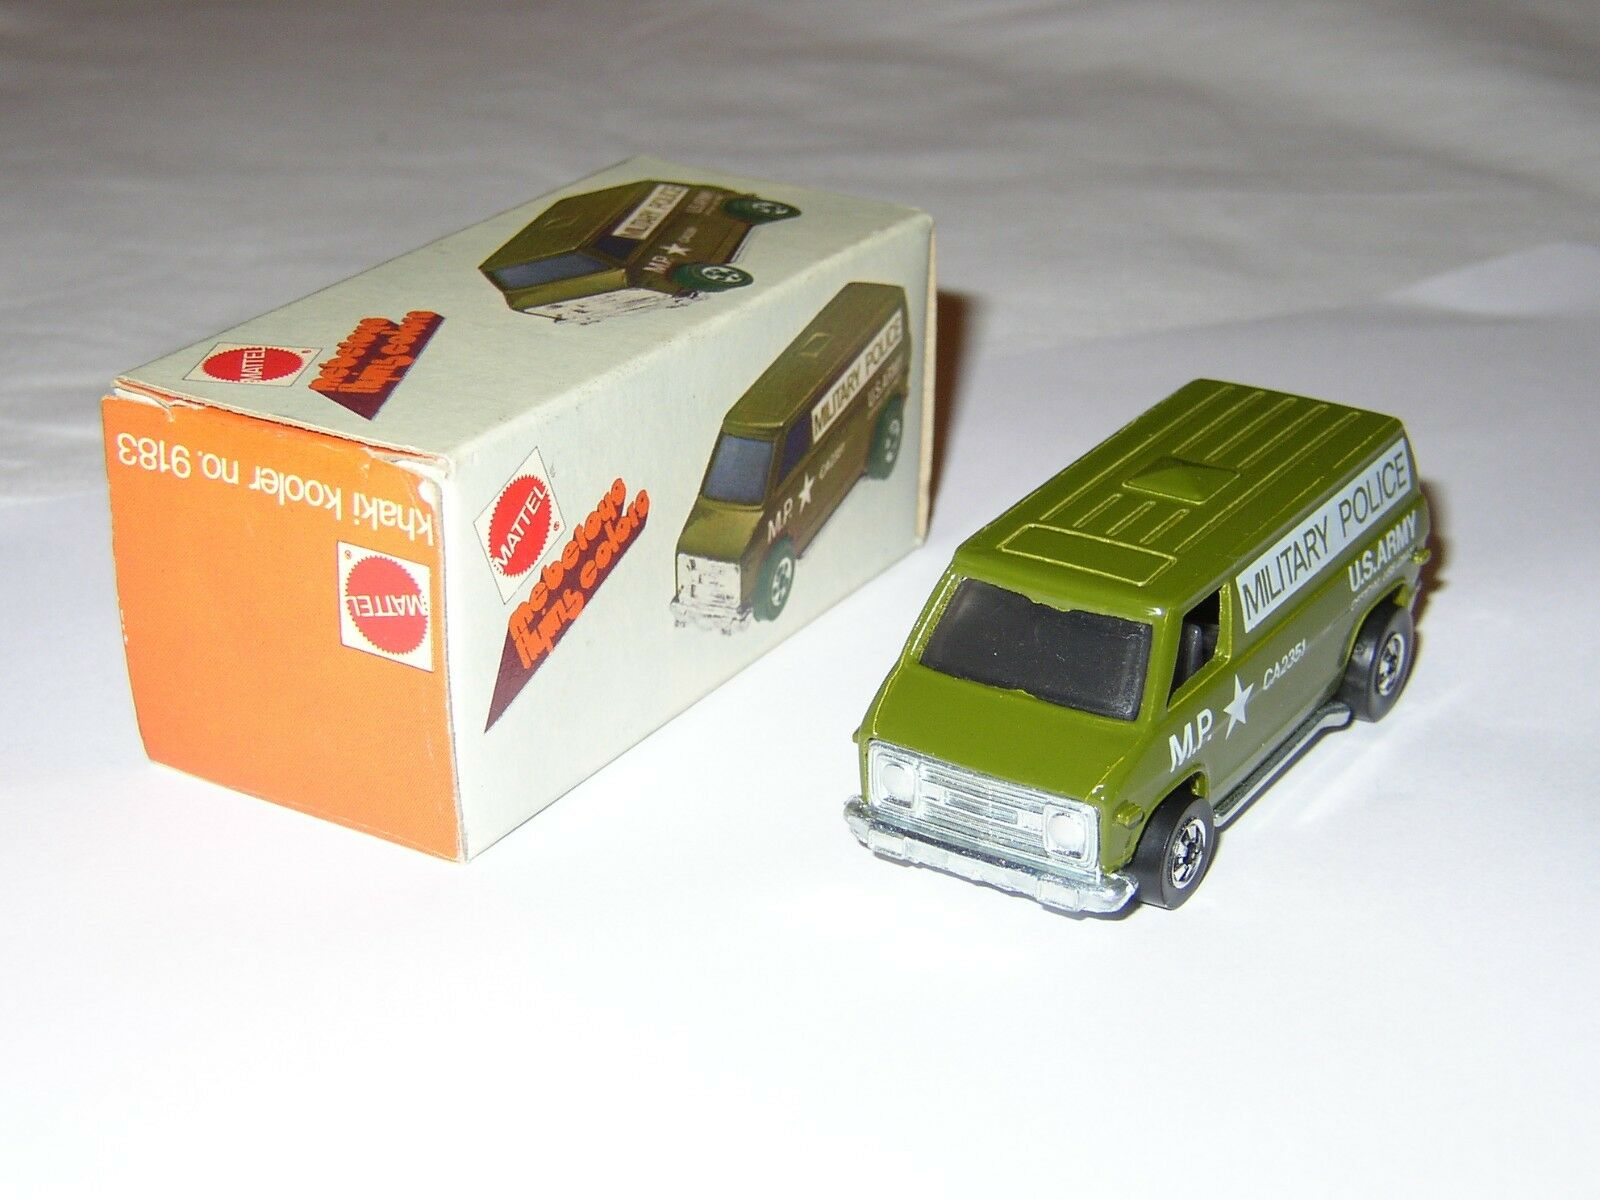 Hot Wheels - Rare Chevy Van - VINTAGE 1974 - No rougeline - Made in HKONG 1974 BOX